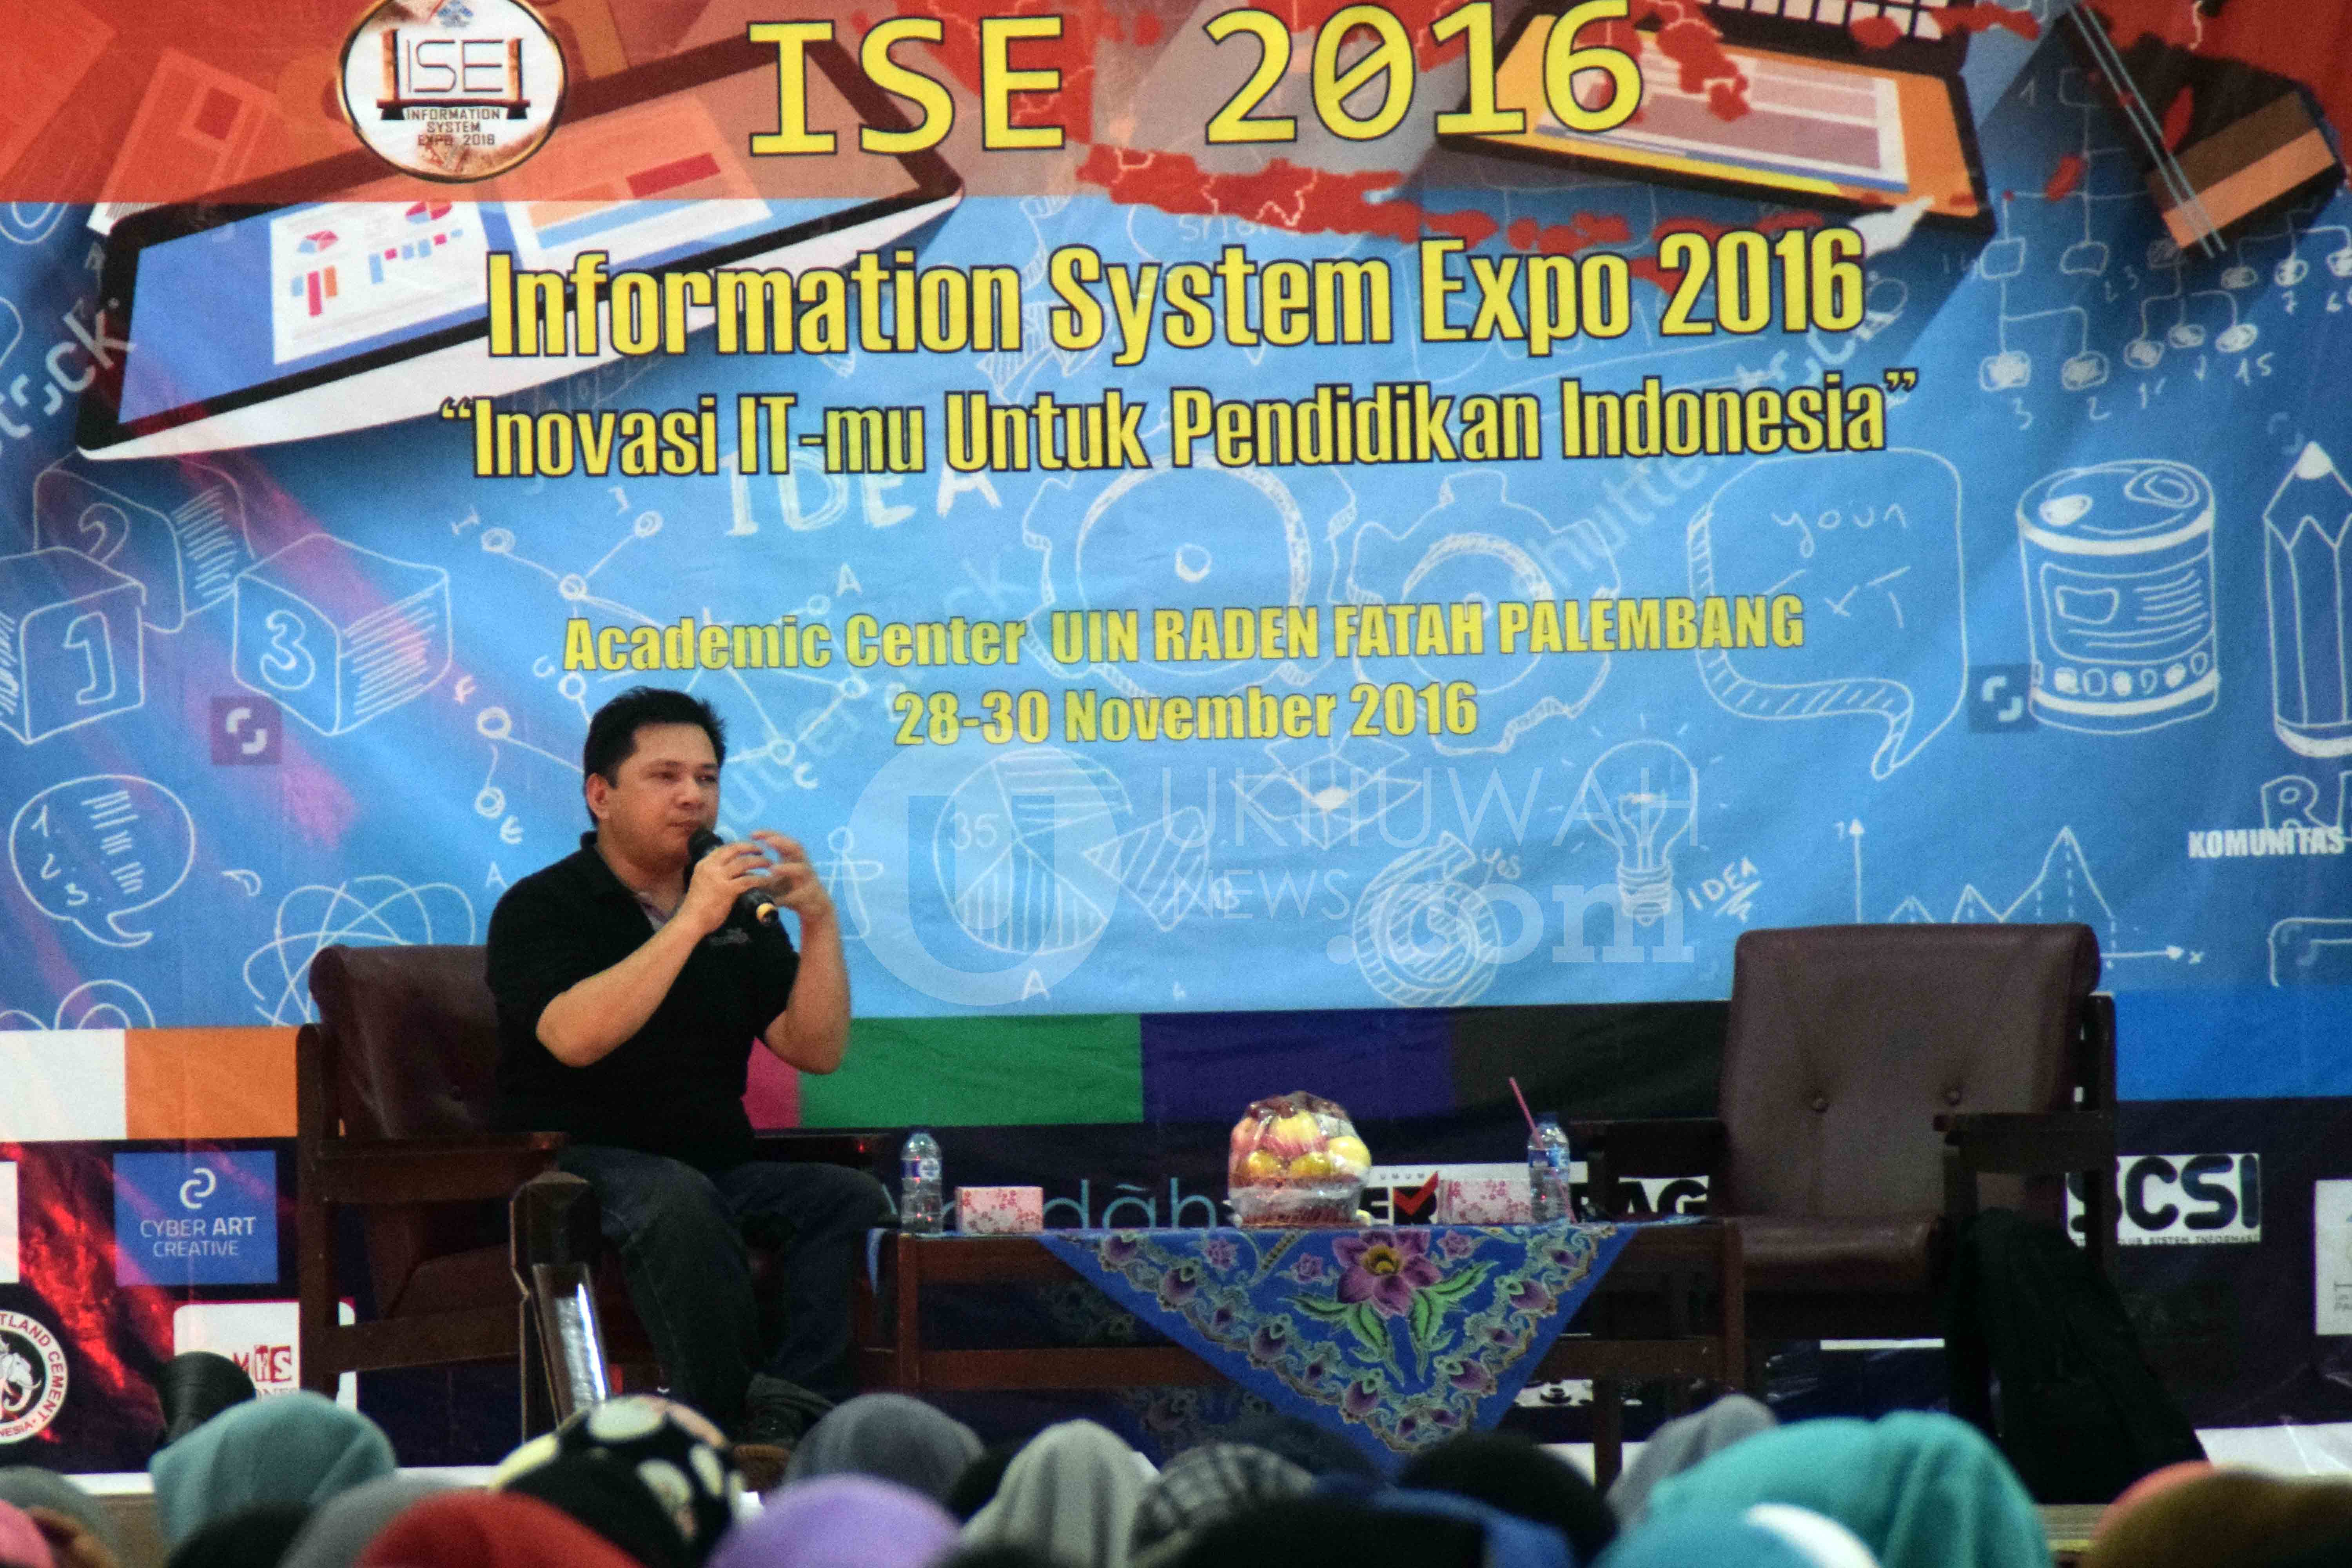 Head Of Executive PHP Indonesia Peter Jack Kambey mengisi materi seminar seputar dunia Information Tecnology (IT) pada acara Information System Expo 2016 di gedung Academik Centre (AC) Universitas Islam Negeri Raden Fatah Palembang, (30/11/2016). Ukhuwahnews/Nopri Ismi